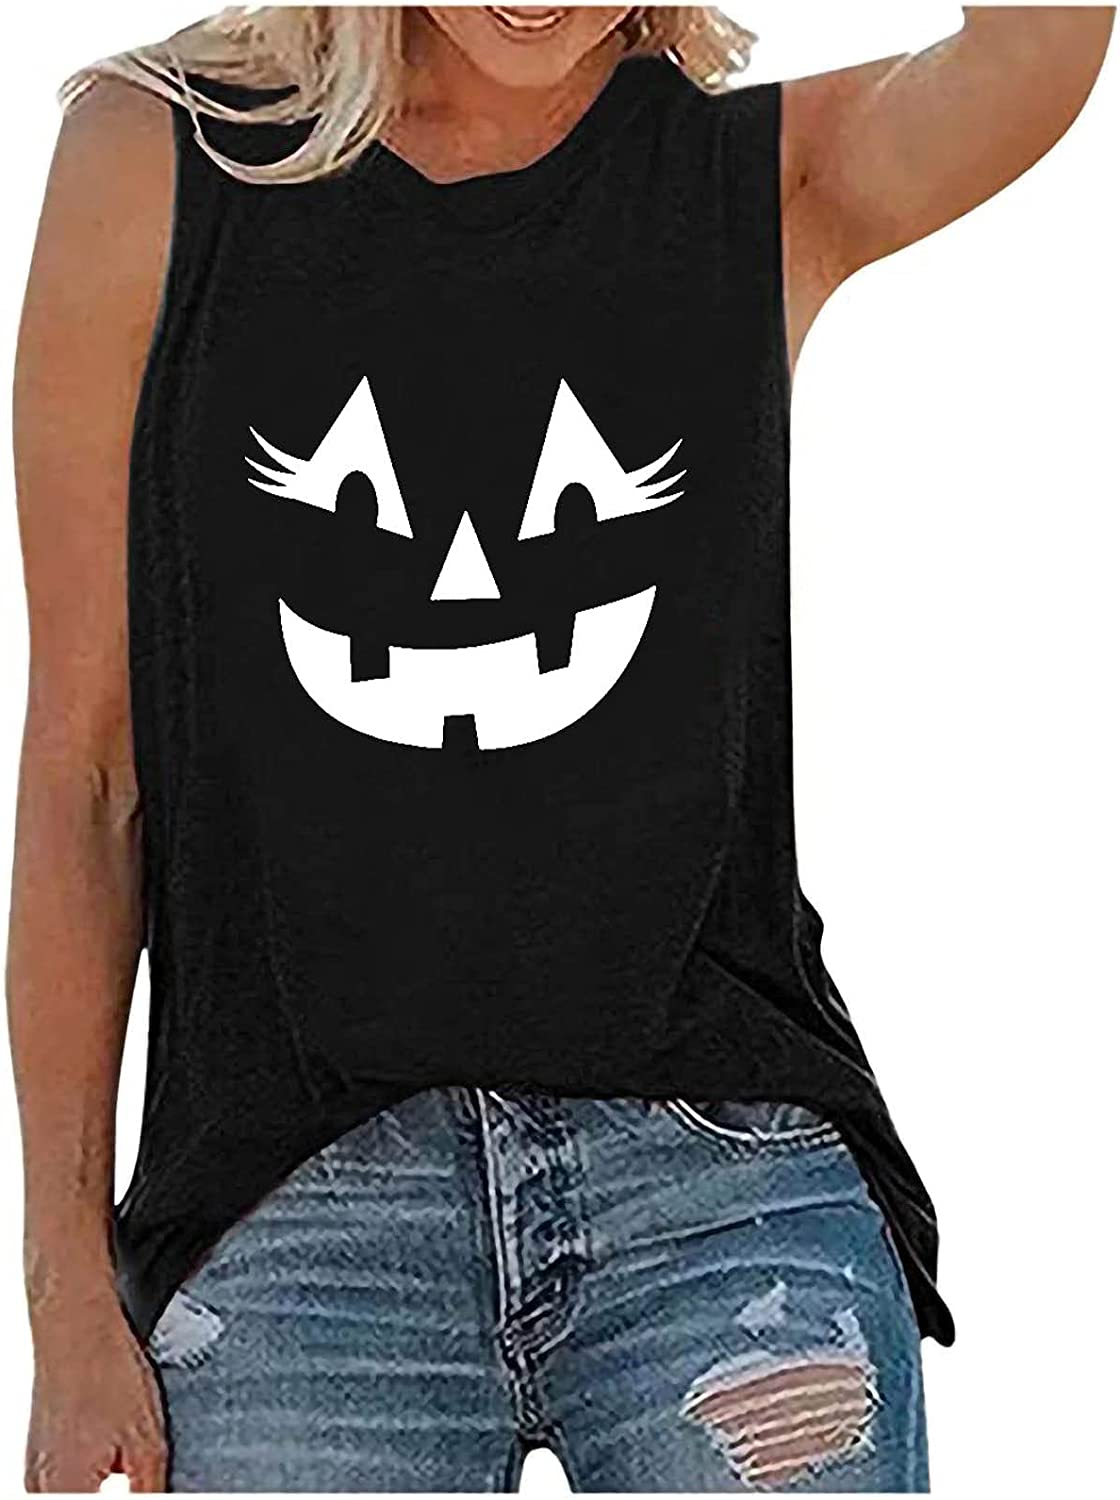 Kinple Halloween Sleeveless Crew Neck Tank Tops for Women Summer Black Funny Printed Loose Fit Workout Athletic Yoga Shirts